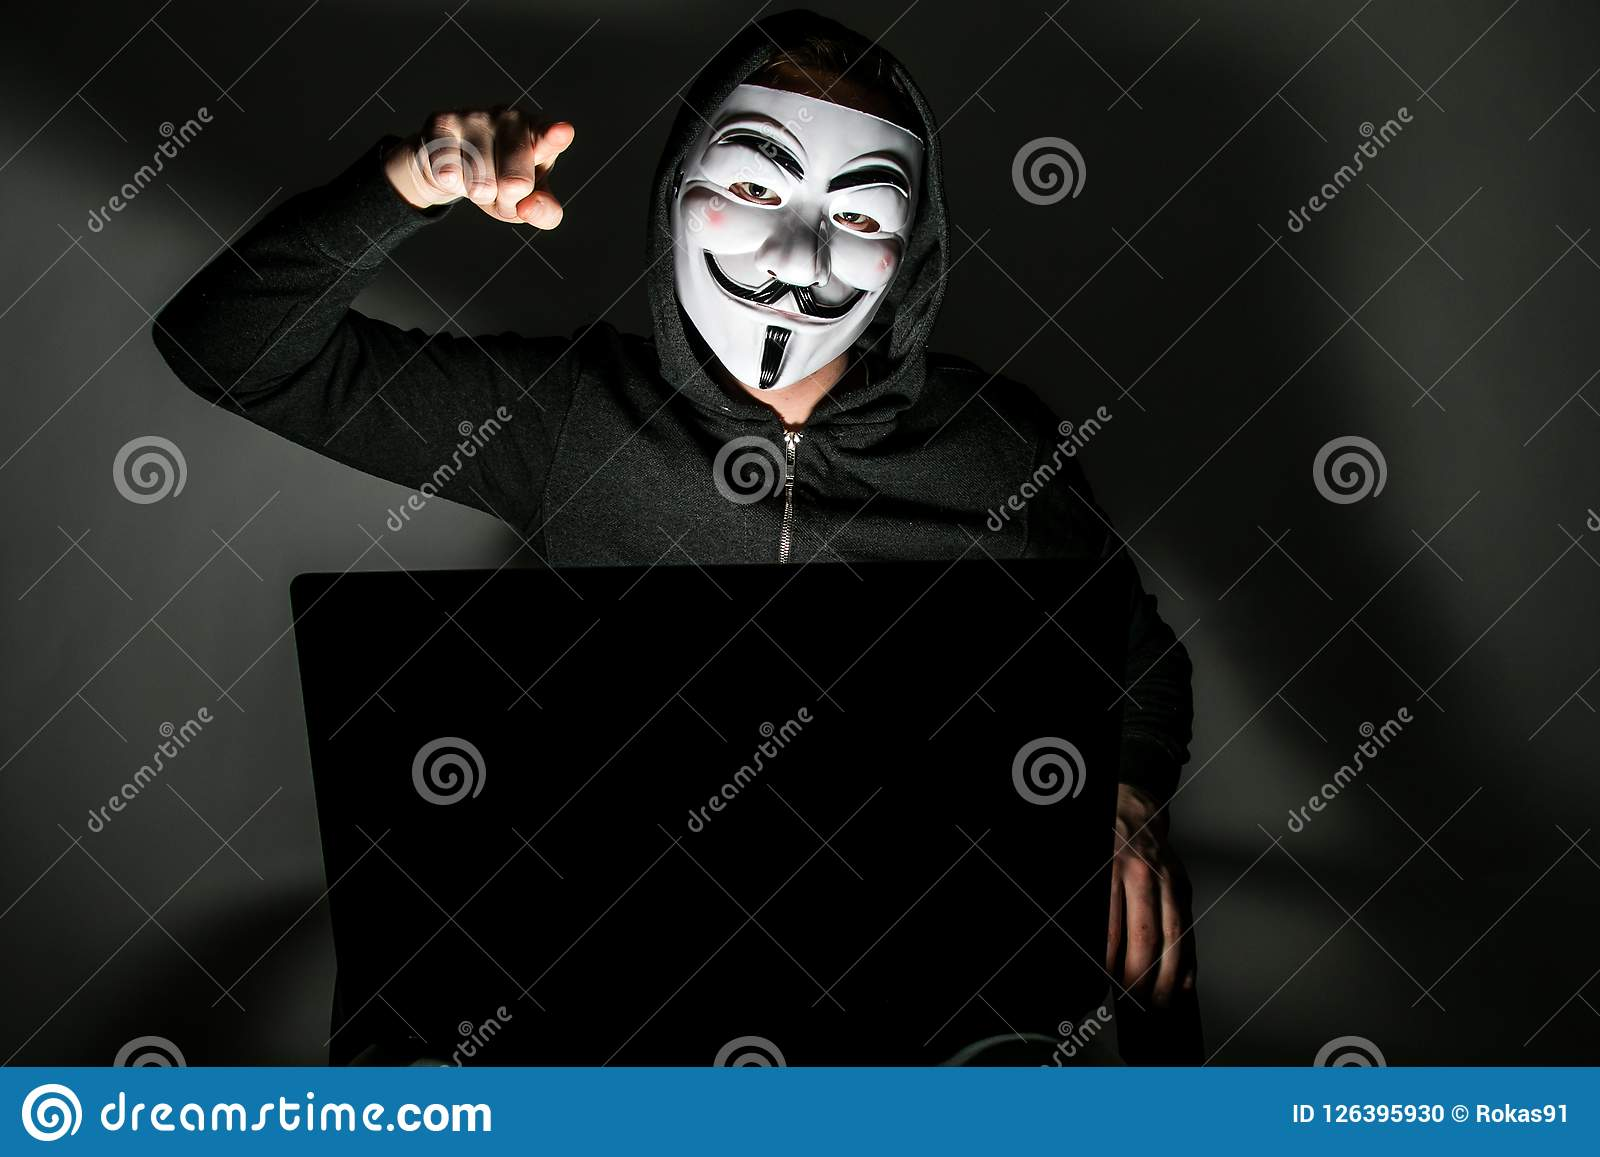 Hacker with anonymous mask editorial image  Image of data - 126395930